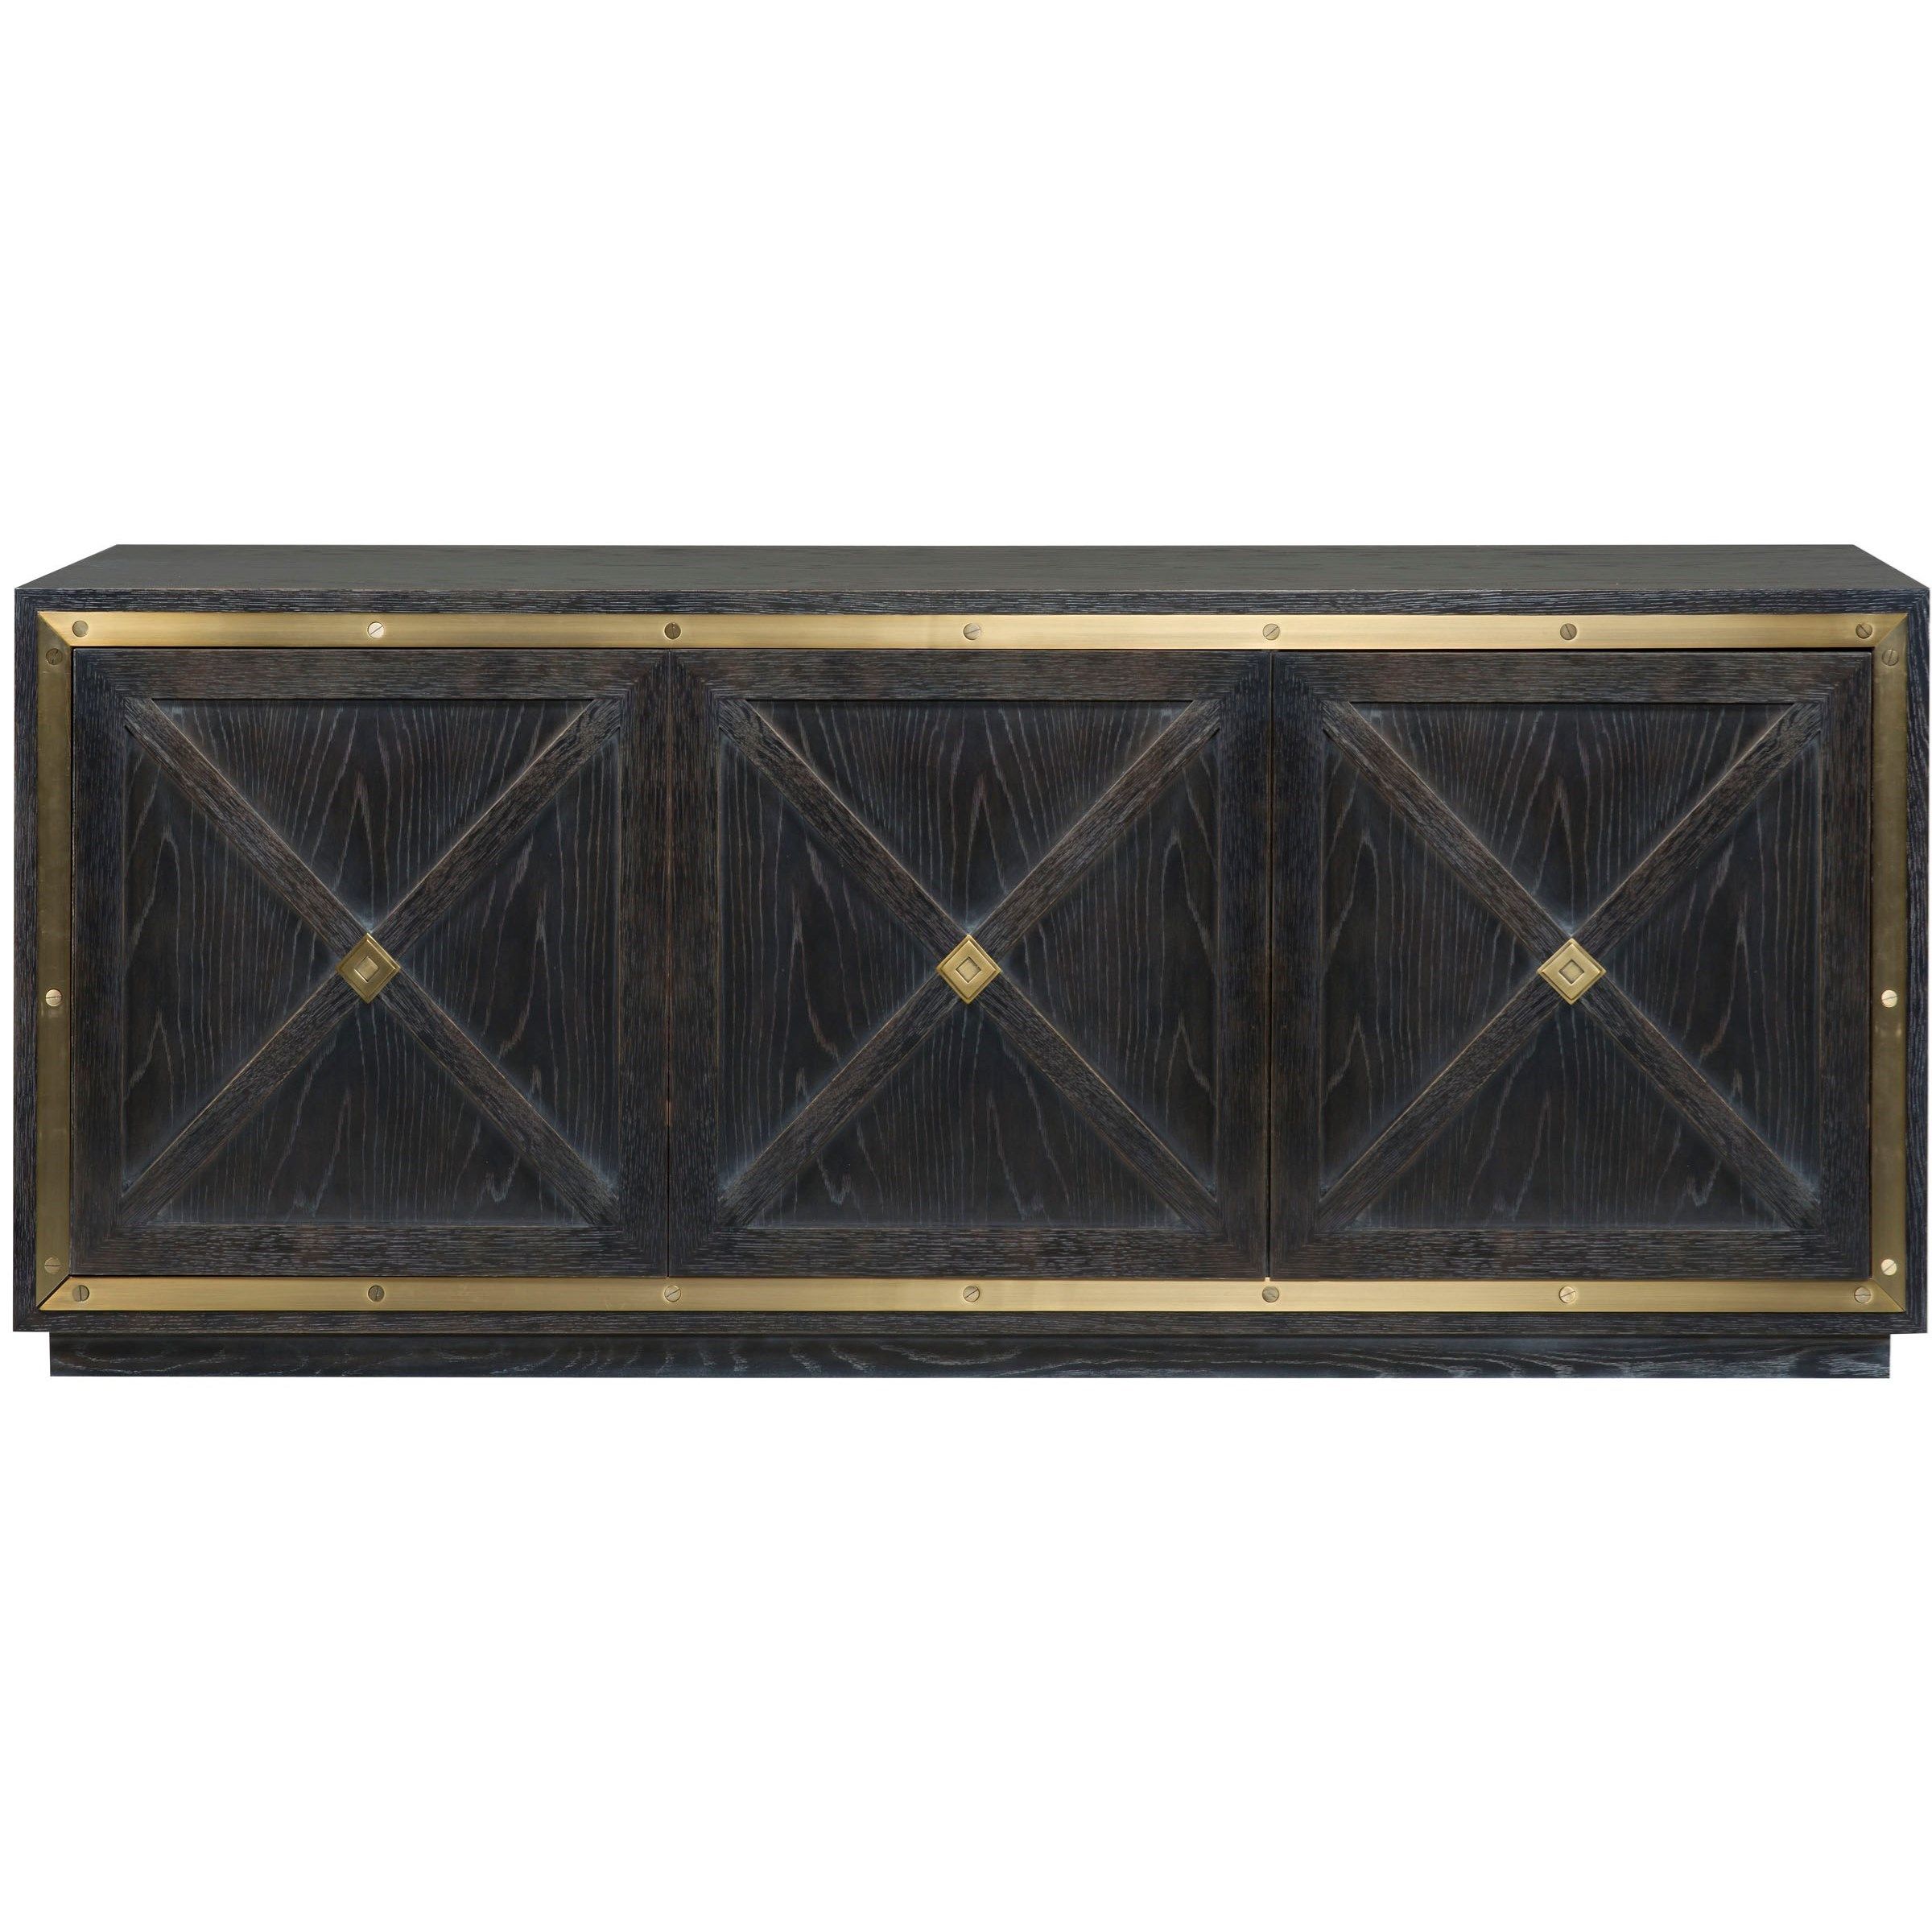 Crouse by Thom Filicia Home Storage Console / Buffet by Vanguard Furniture at Baer's Furniture